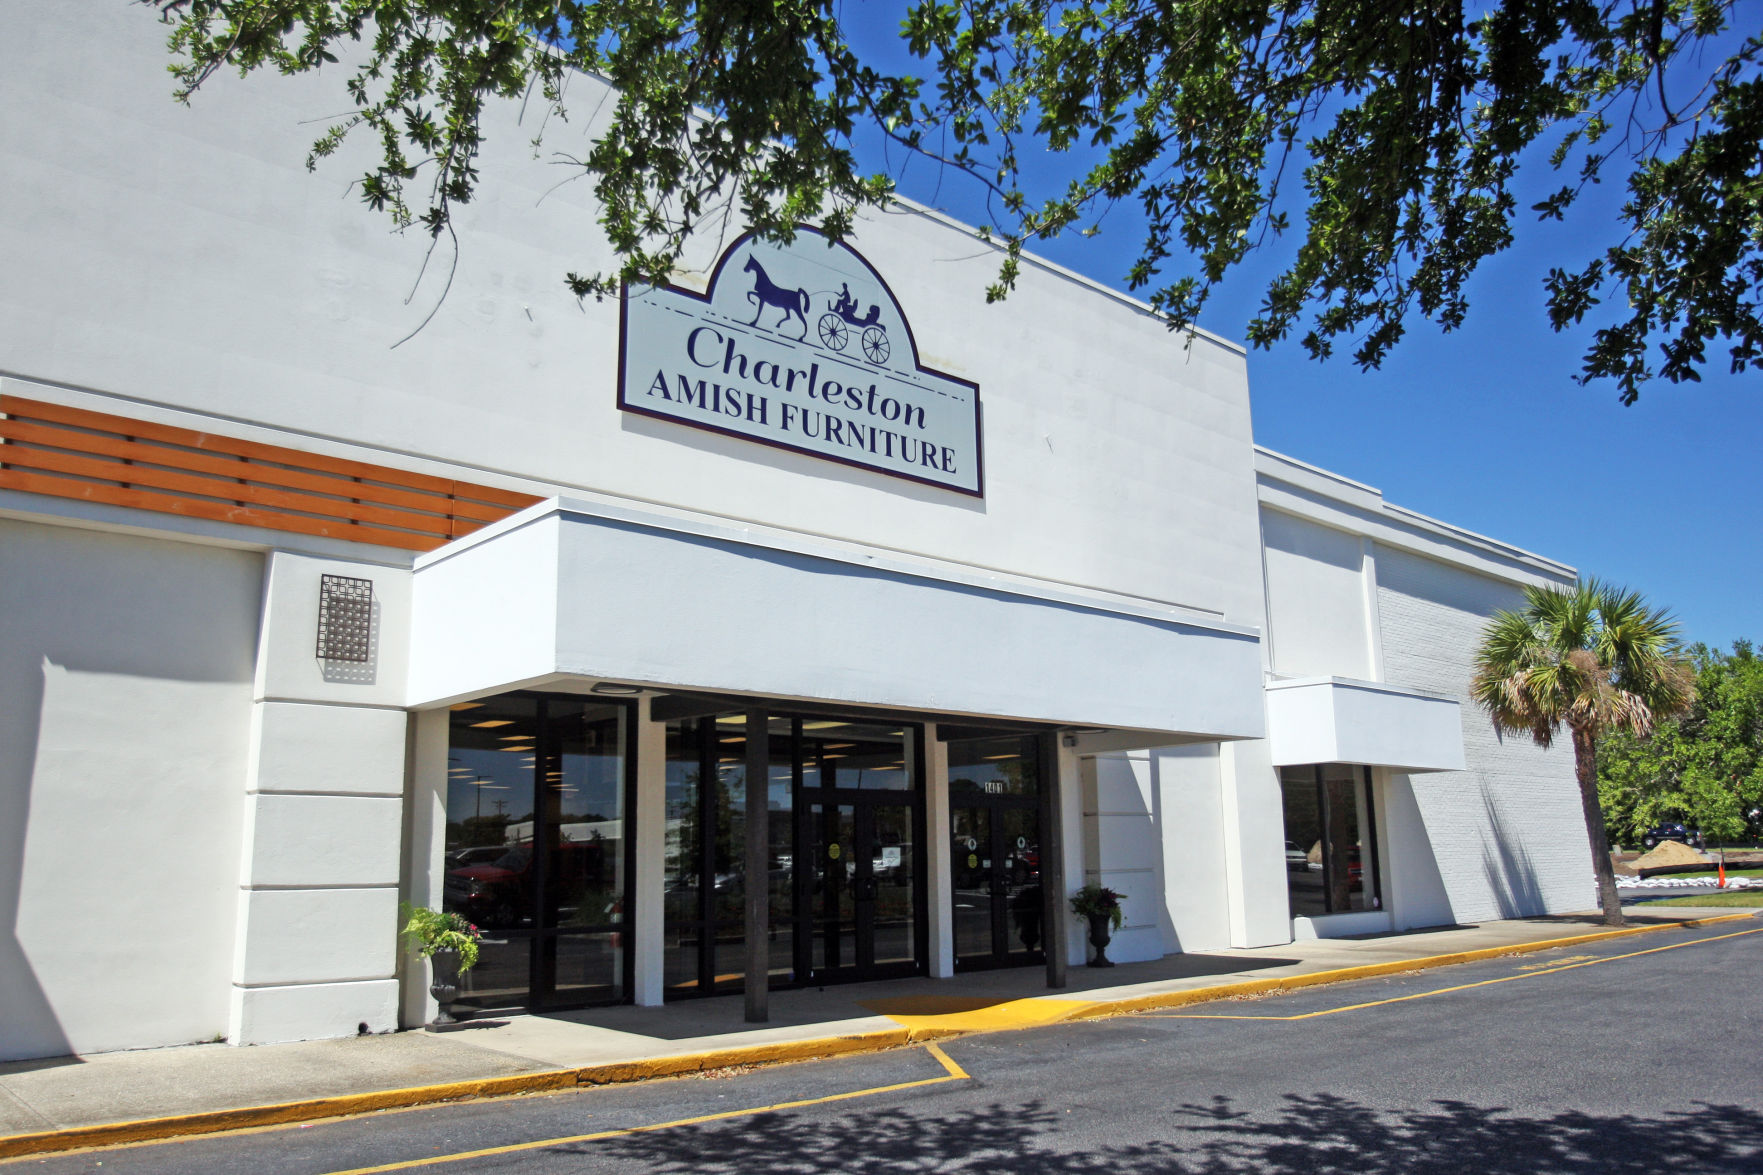 Amish Furniture Store One Of Four Home Decor Shops Opening In West Ashley    Business   Postandcourier.com